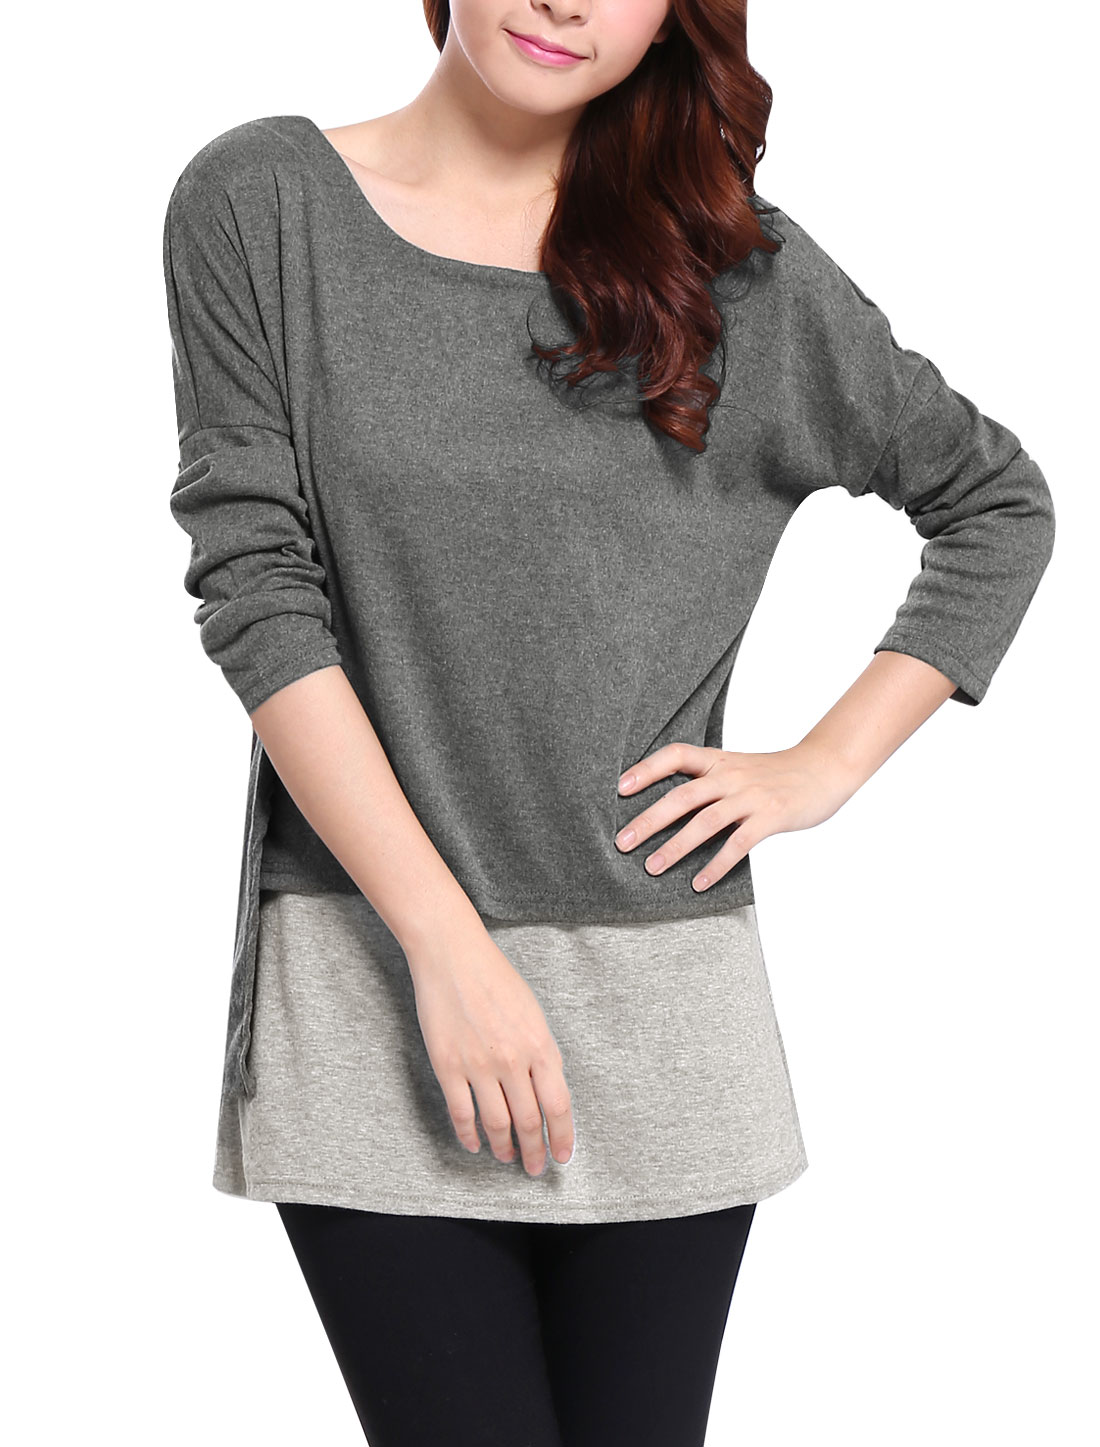 Woman's Long Sleeve Layered Shirts Casual Sweatshirt Gray XS